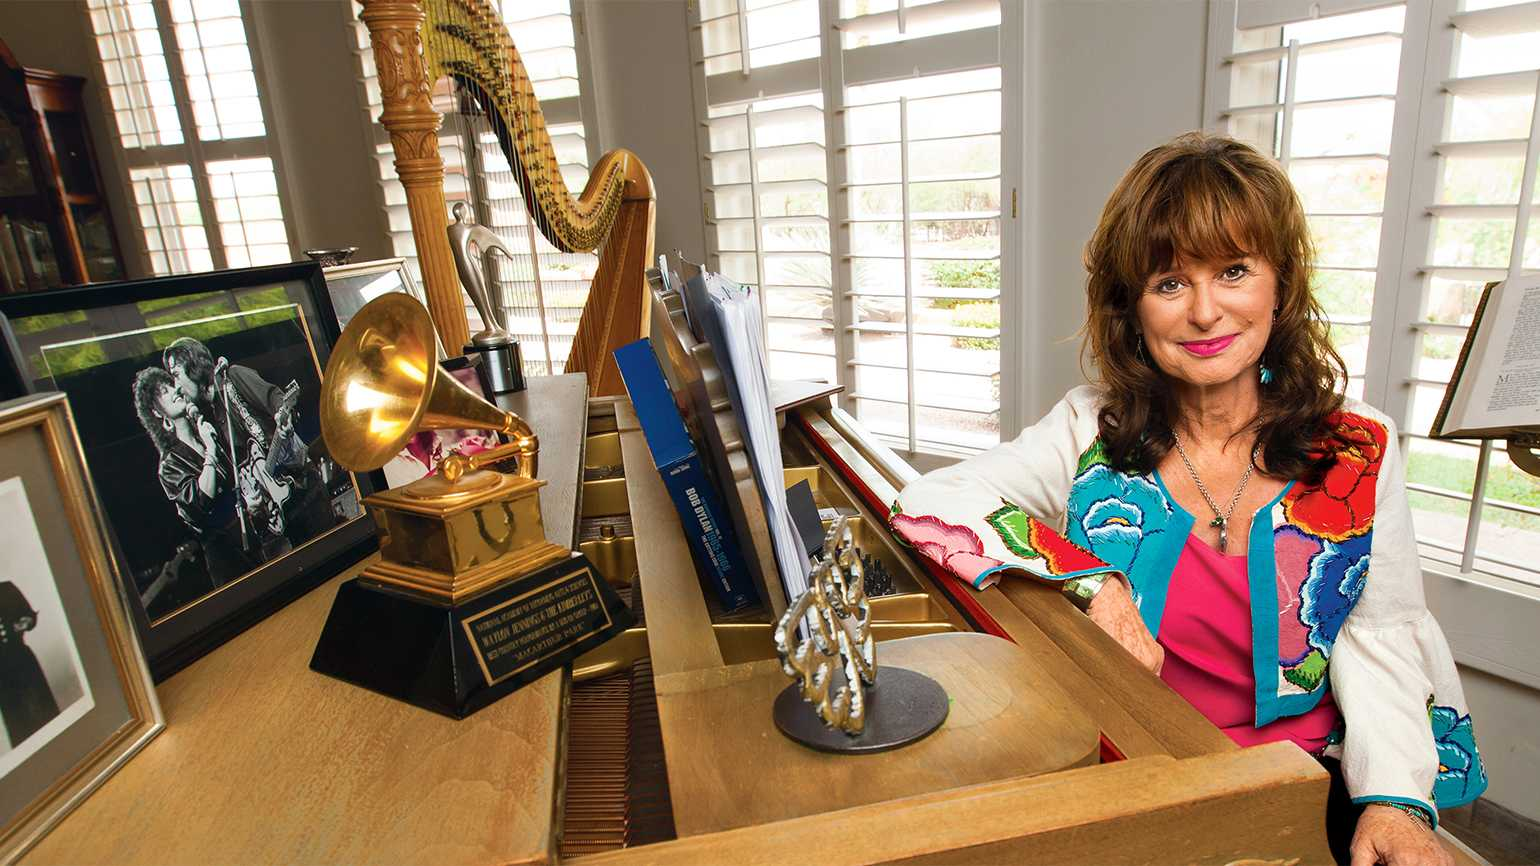 Jessi Colter's faith was inspired by her mom, who was a preacher.